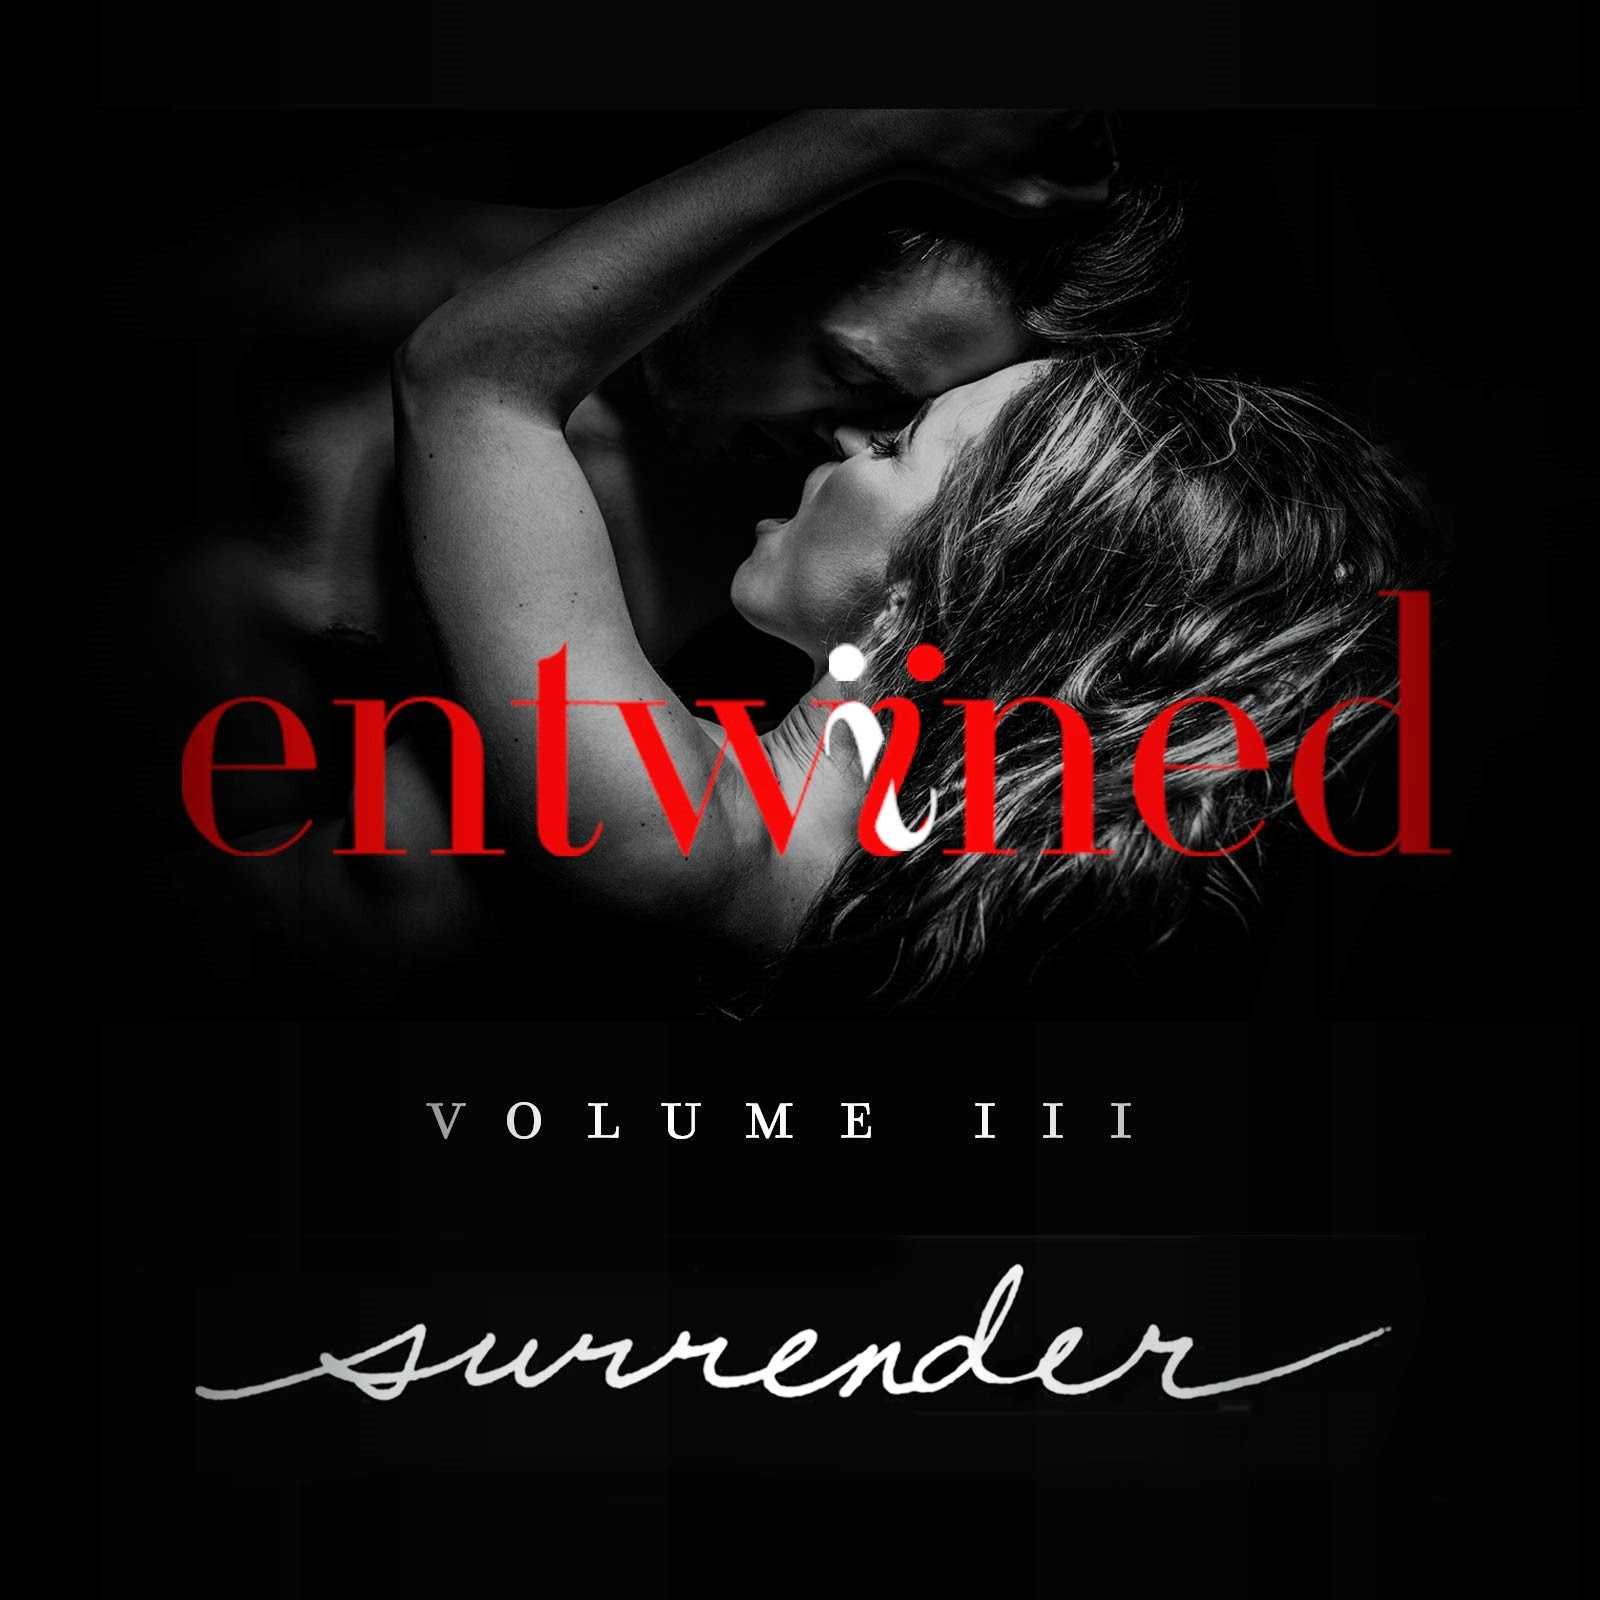 Entwined Blog Tour 2/13 - 3/2